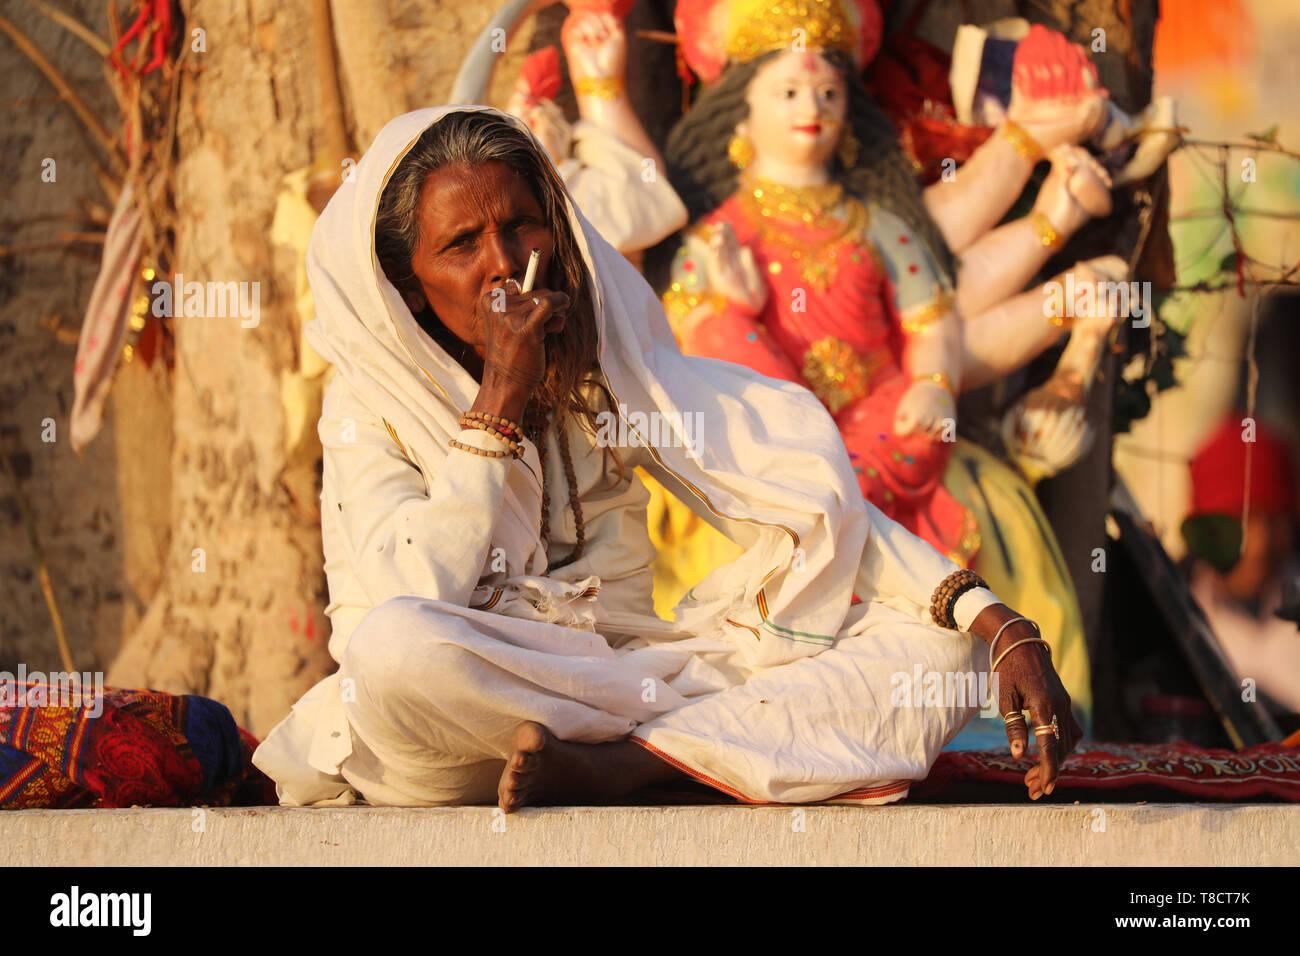 Old Woman sitting on holy tree and smoking - Stock Image